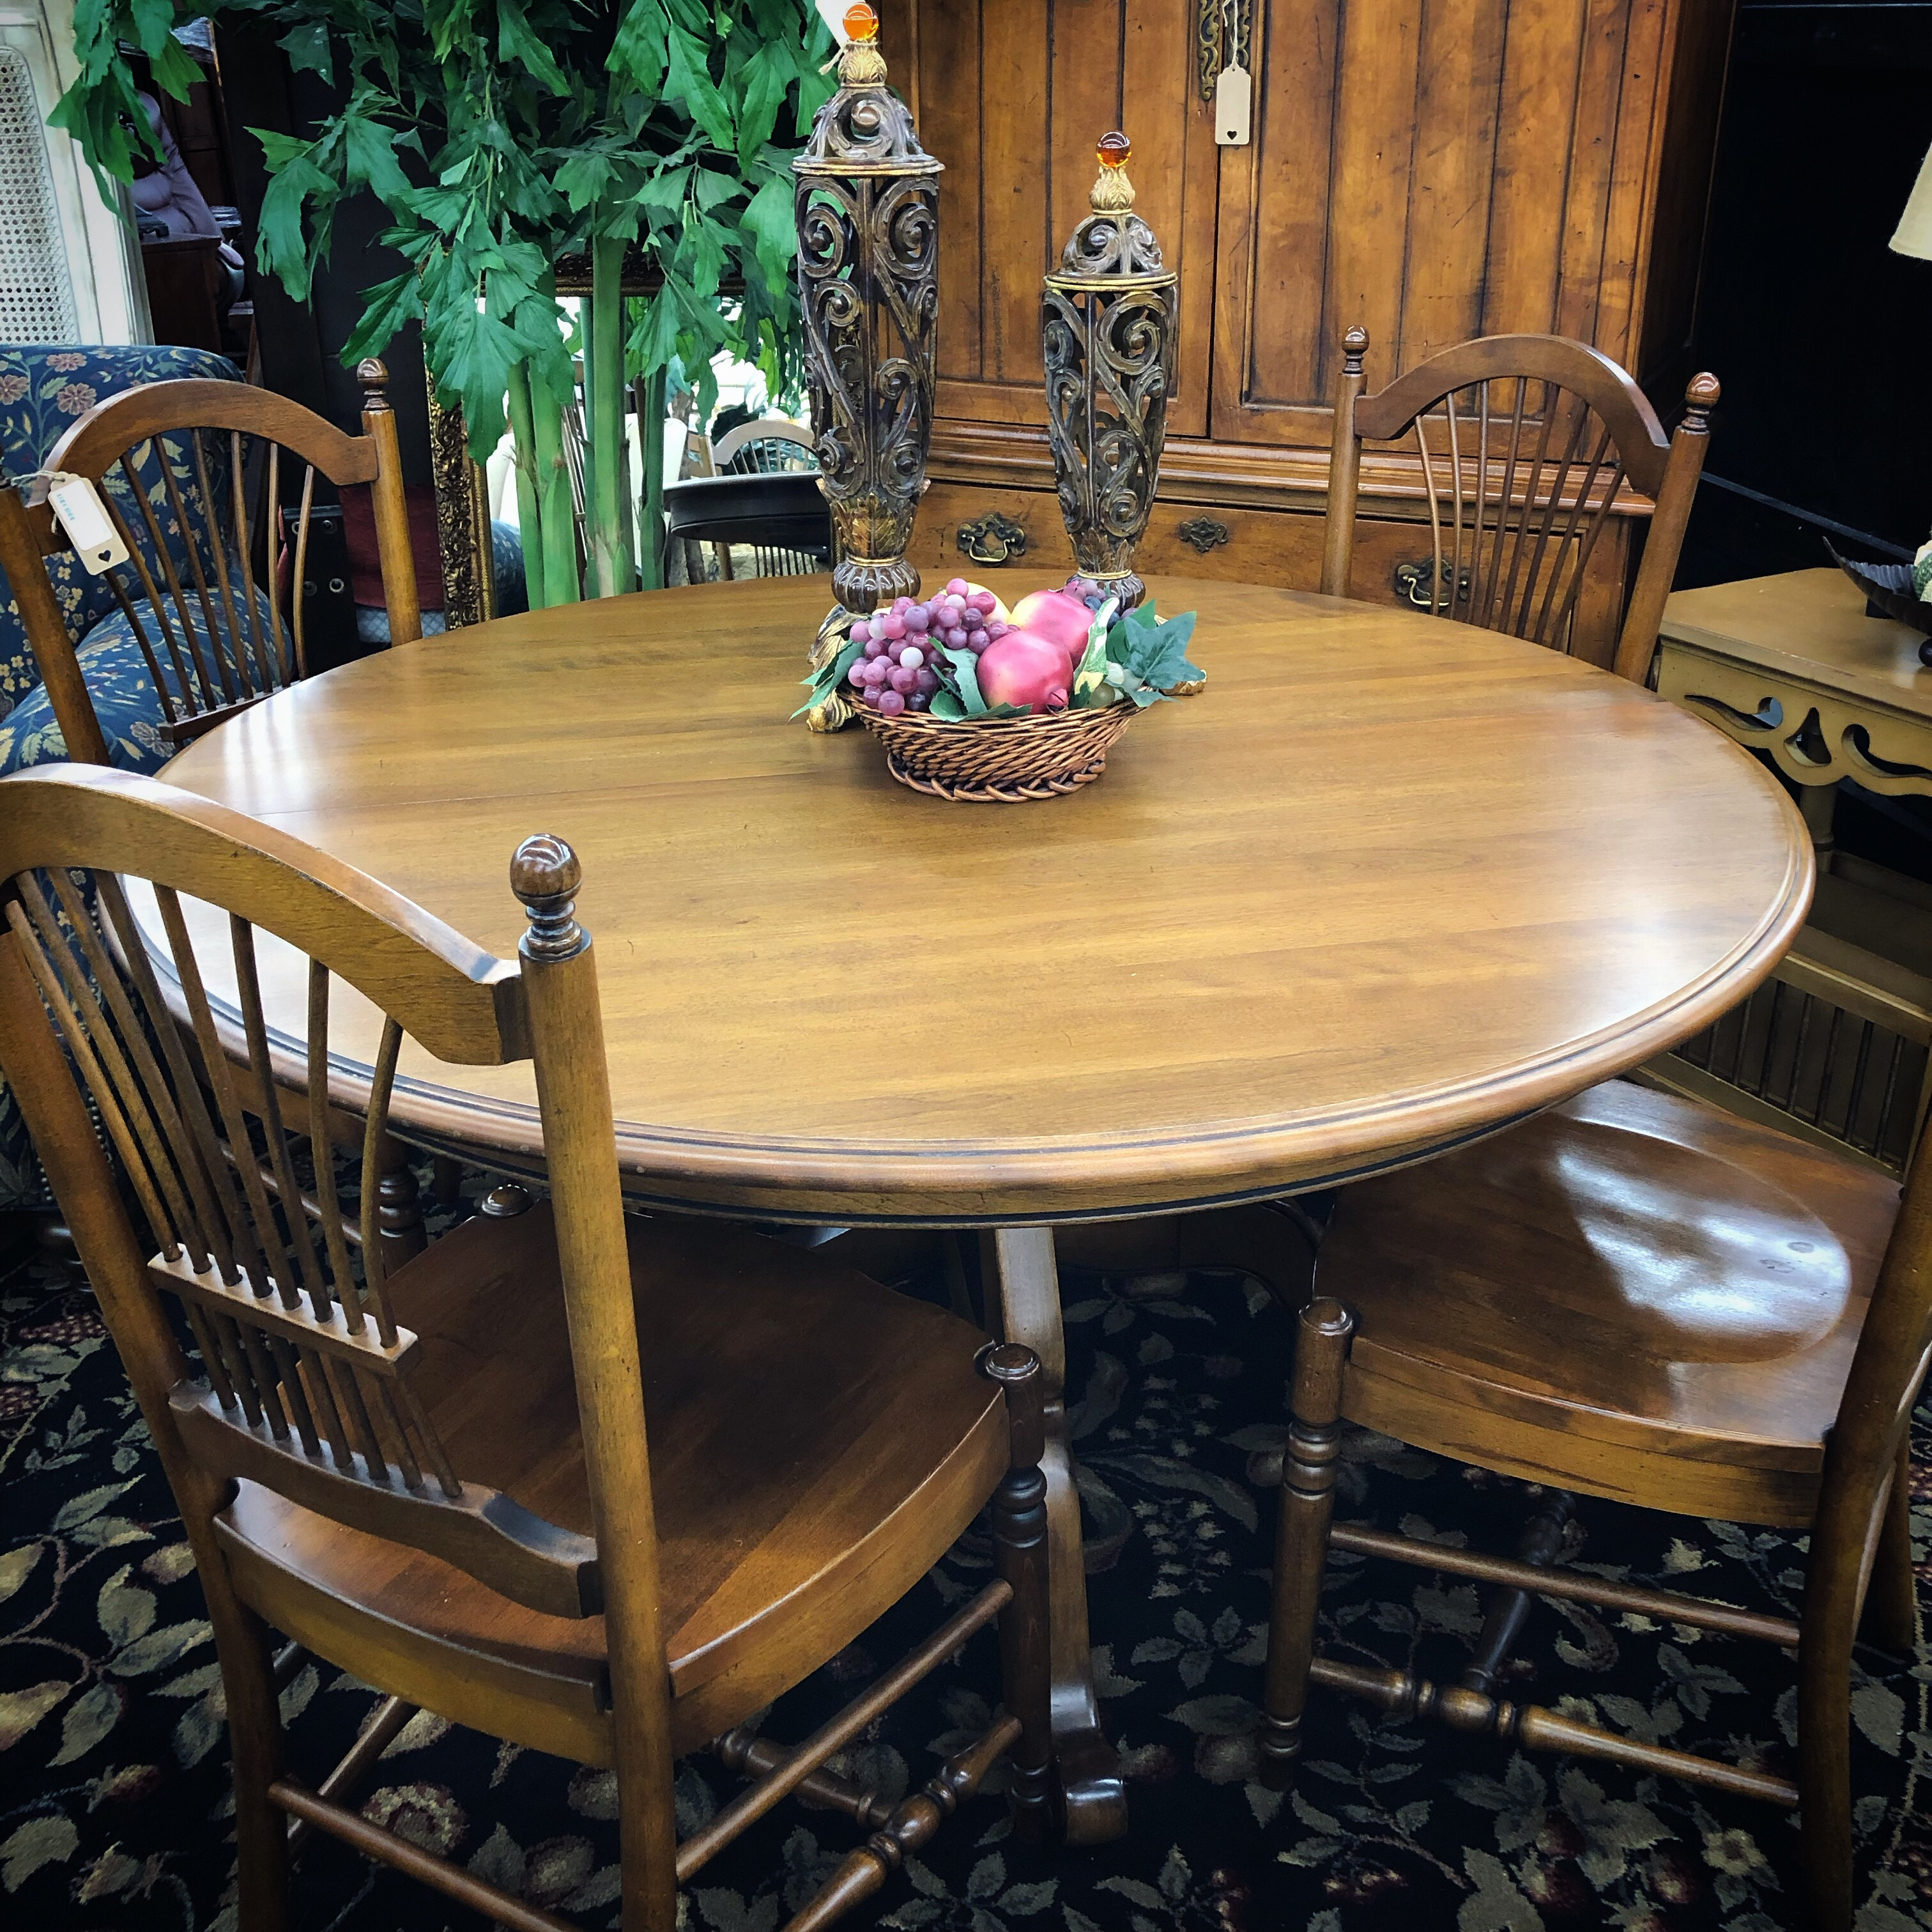 four chair round dining table made of maple colored wood